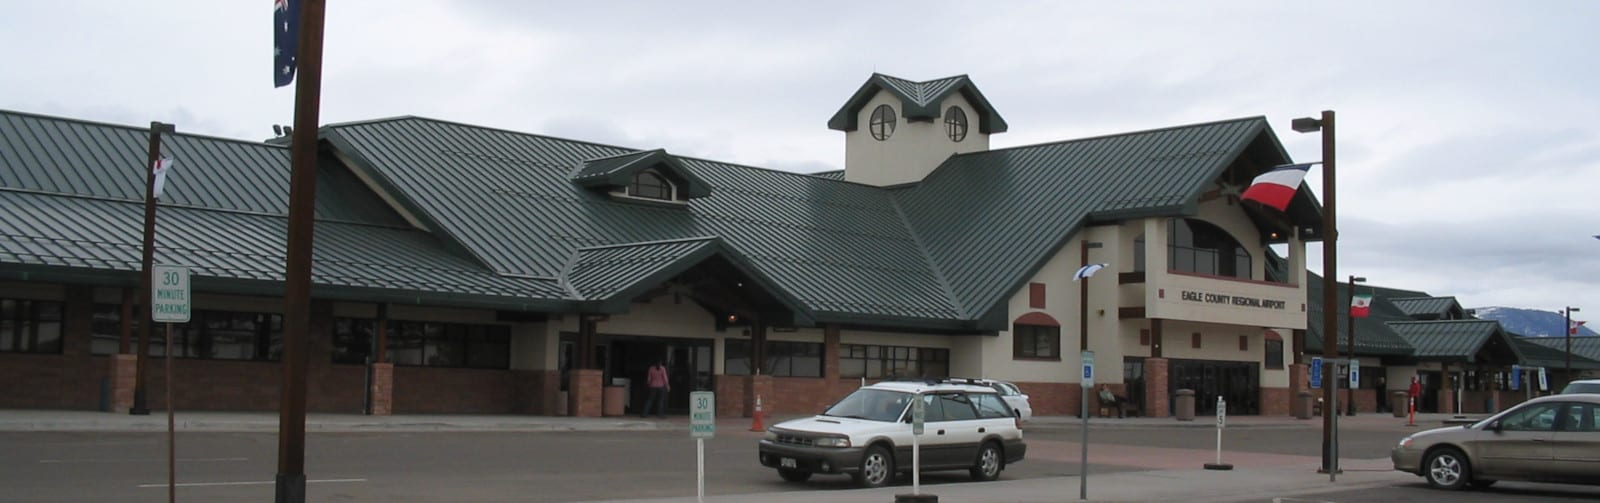 Eagle County Regional Airport Terminal